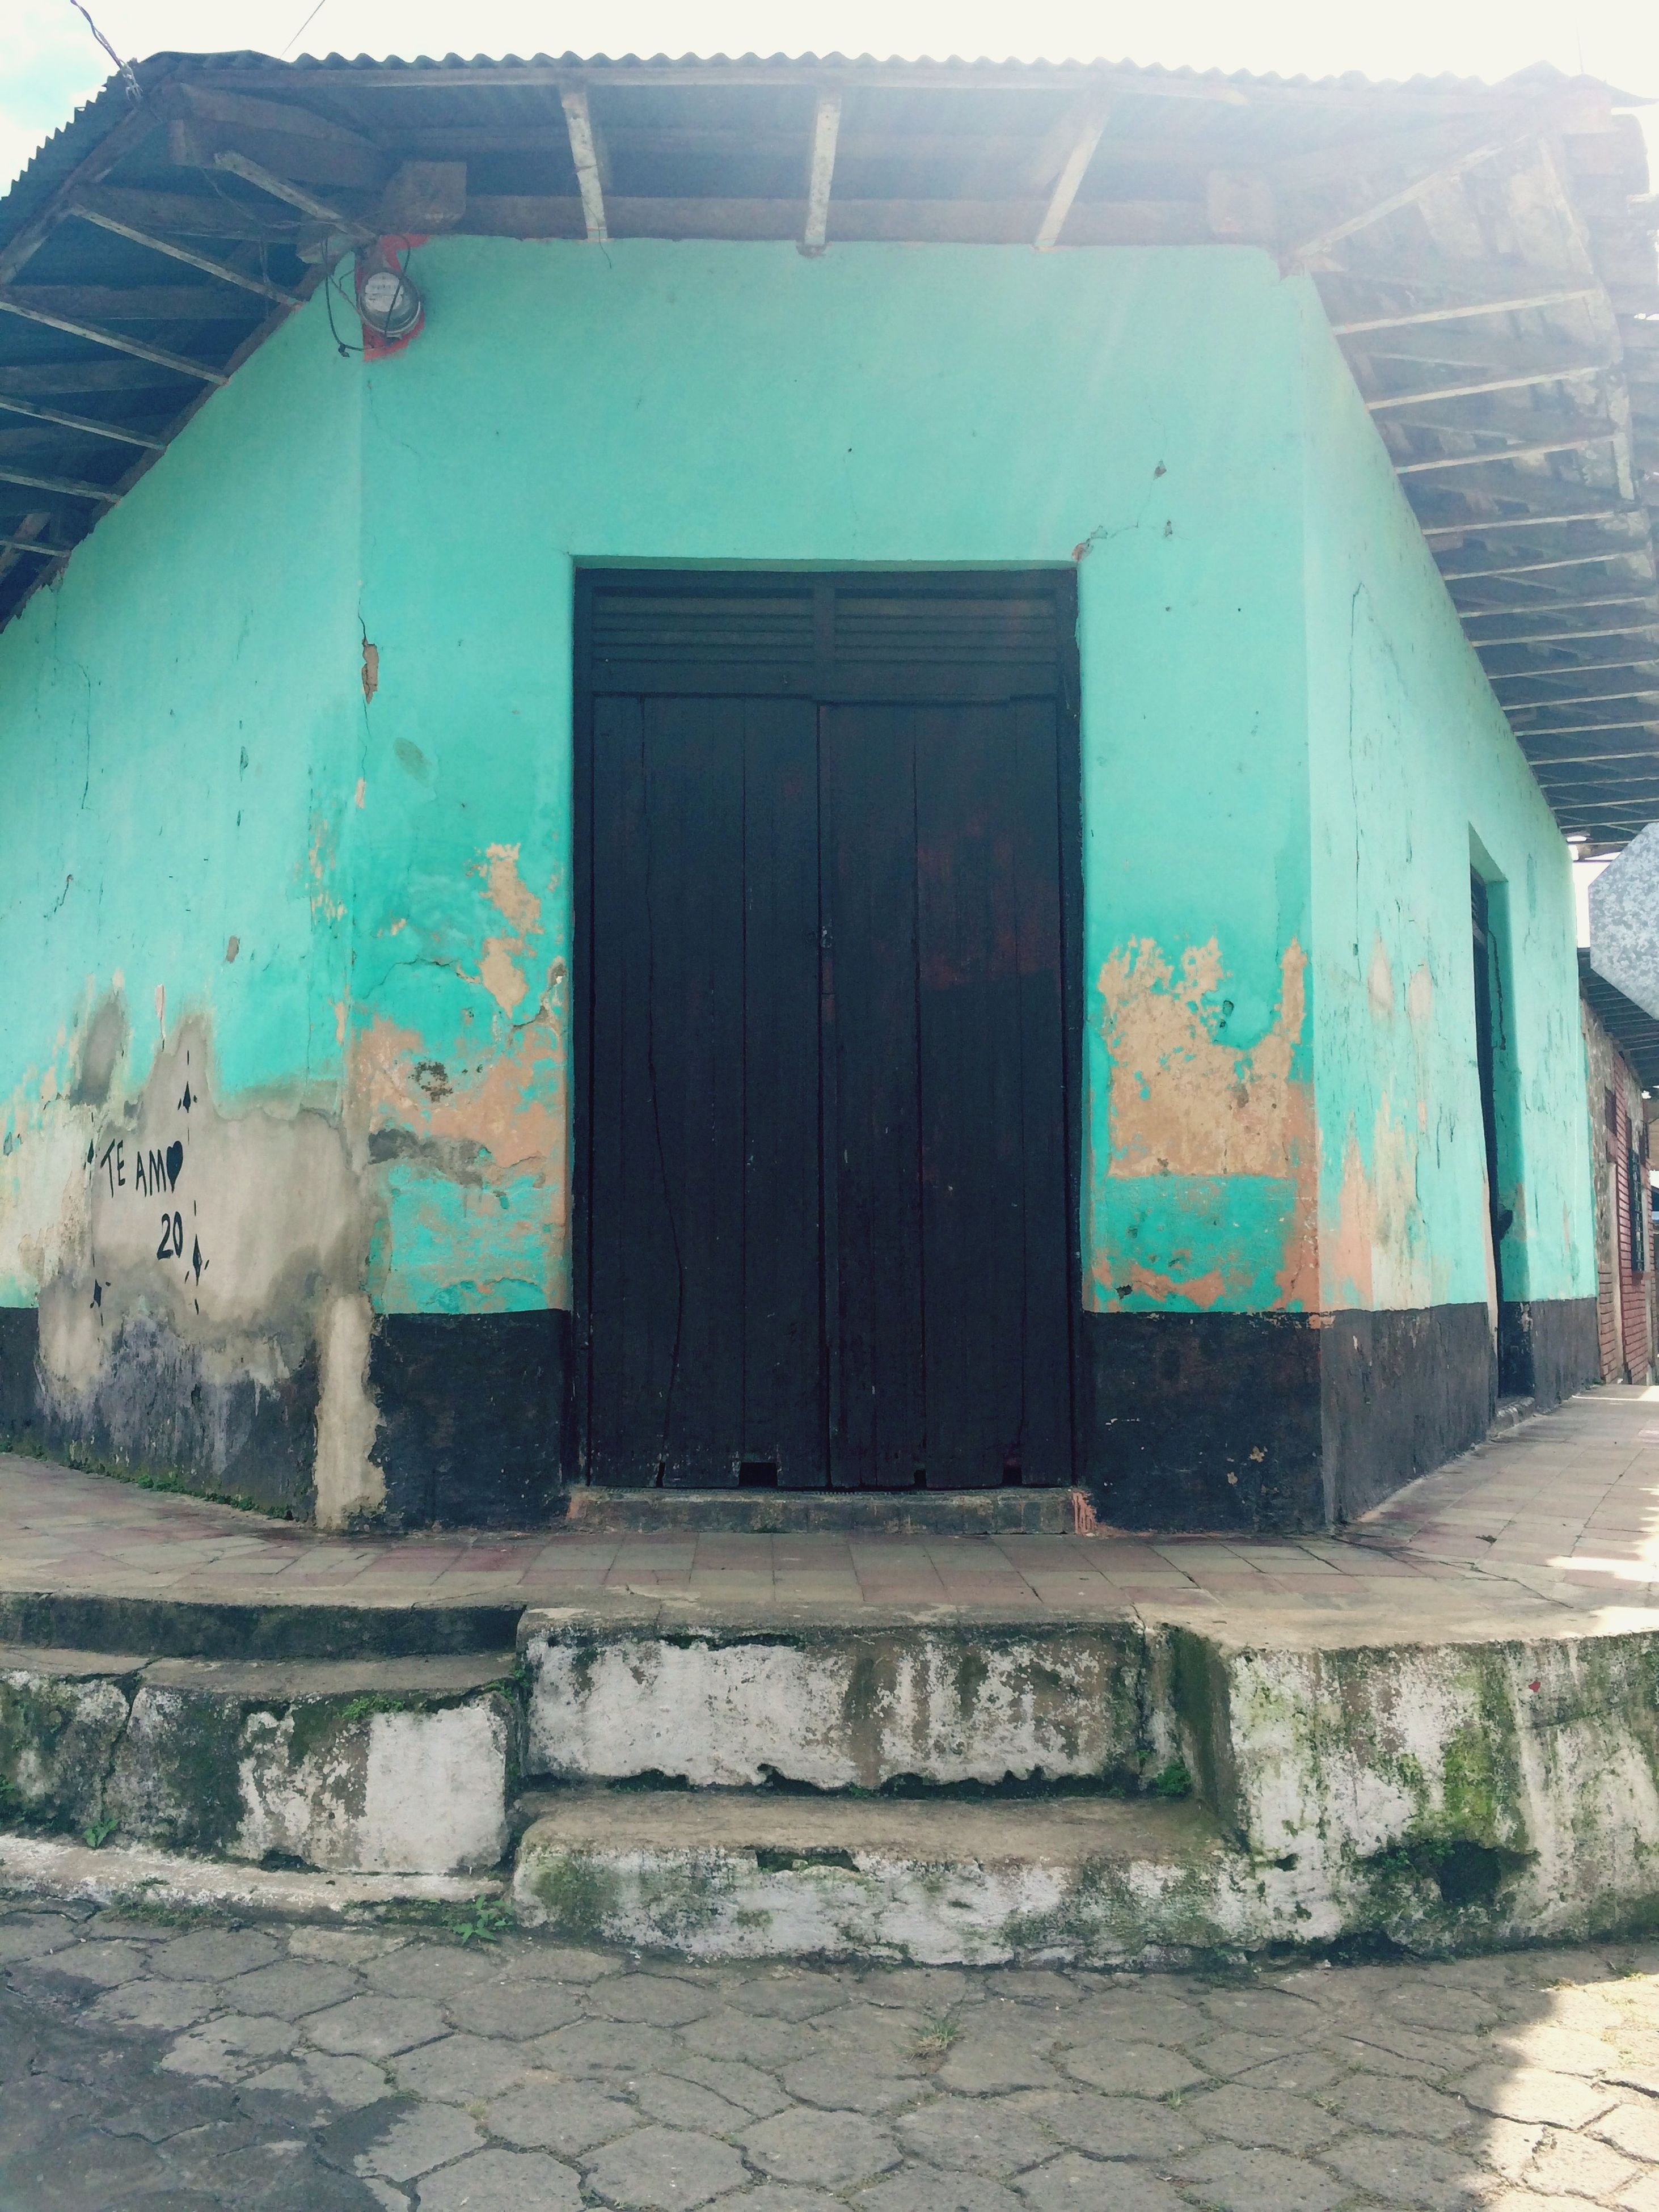 building exterior, architecture, built structure, door, graffiti, house, wall - building feature, weathered, closed, building, window, residential structure, old, abandoned, day, damaged, city, outdoors, blue, street